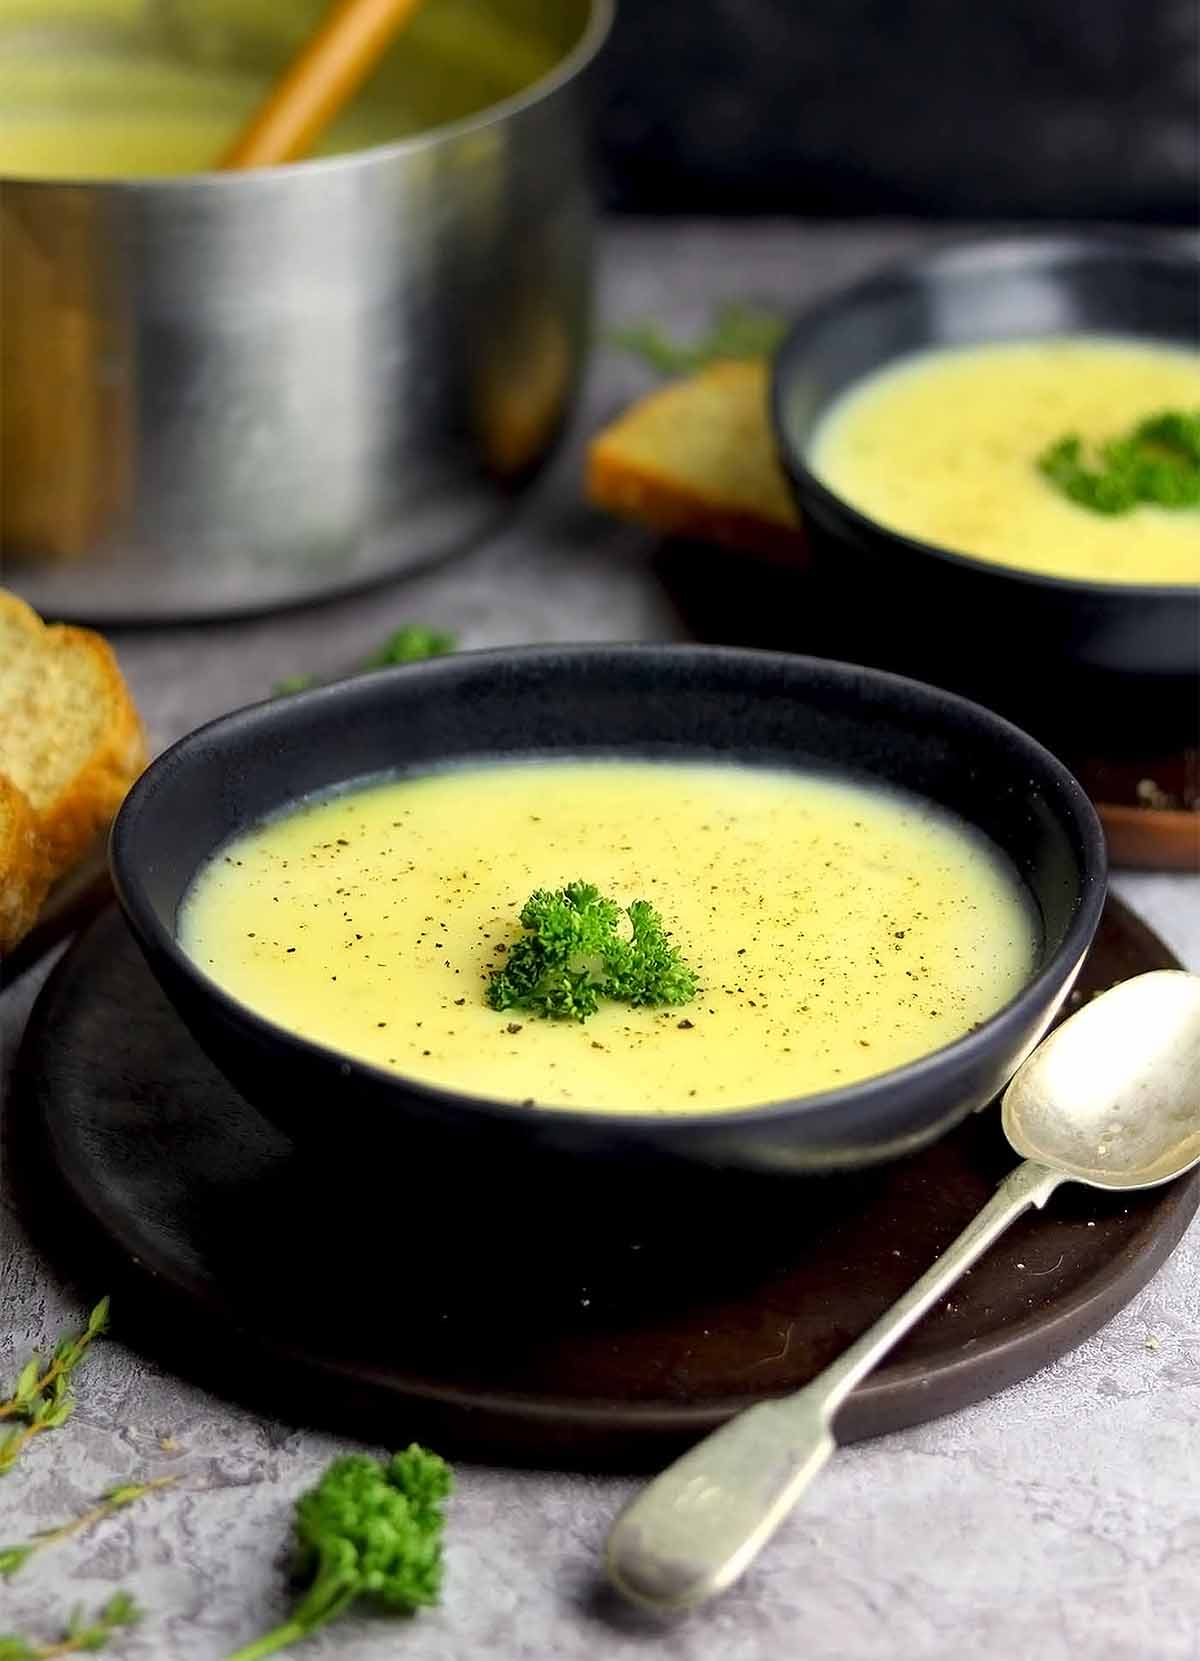 Potato Soup with parsley and bread in bowls